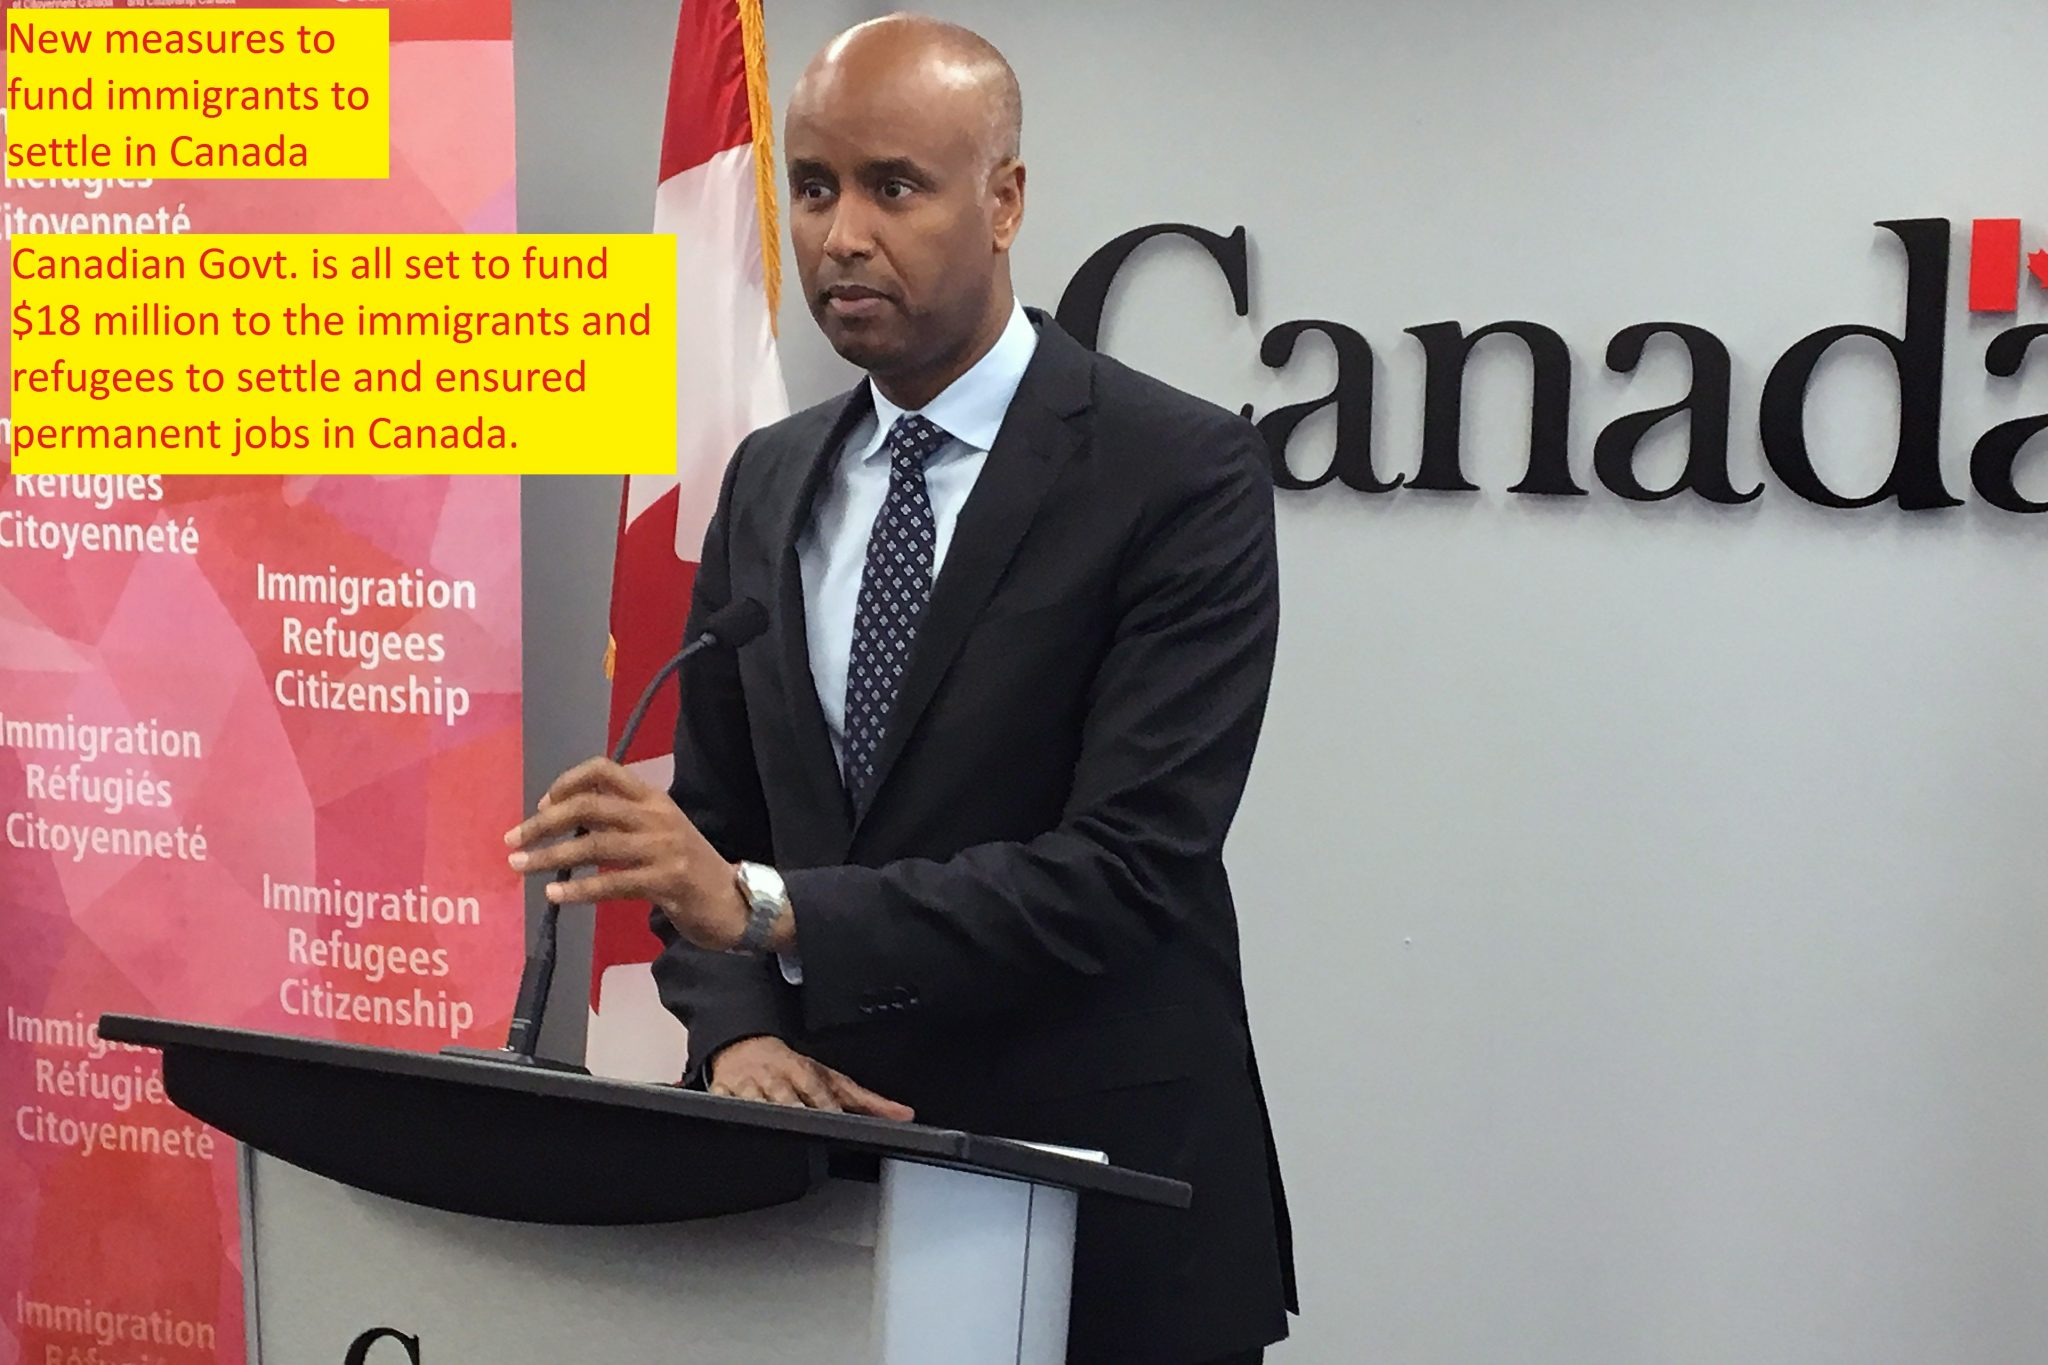 New measures to fund immigrants to settle in Canada